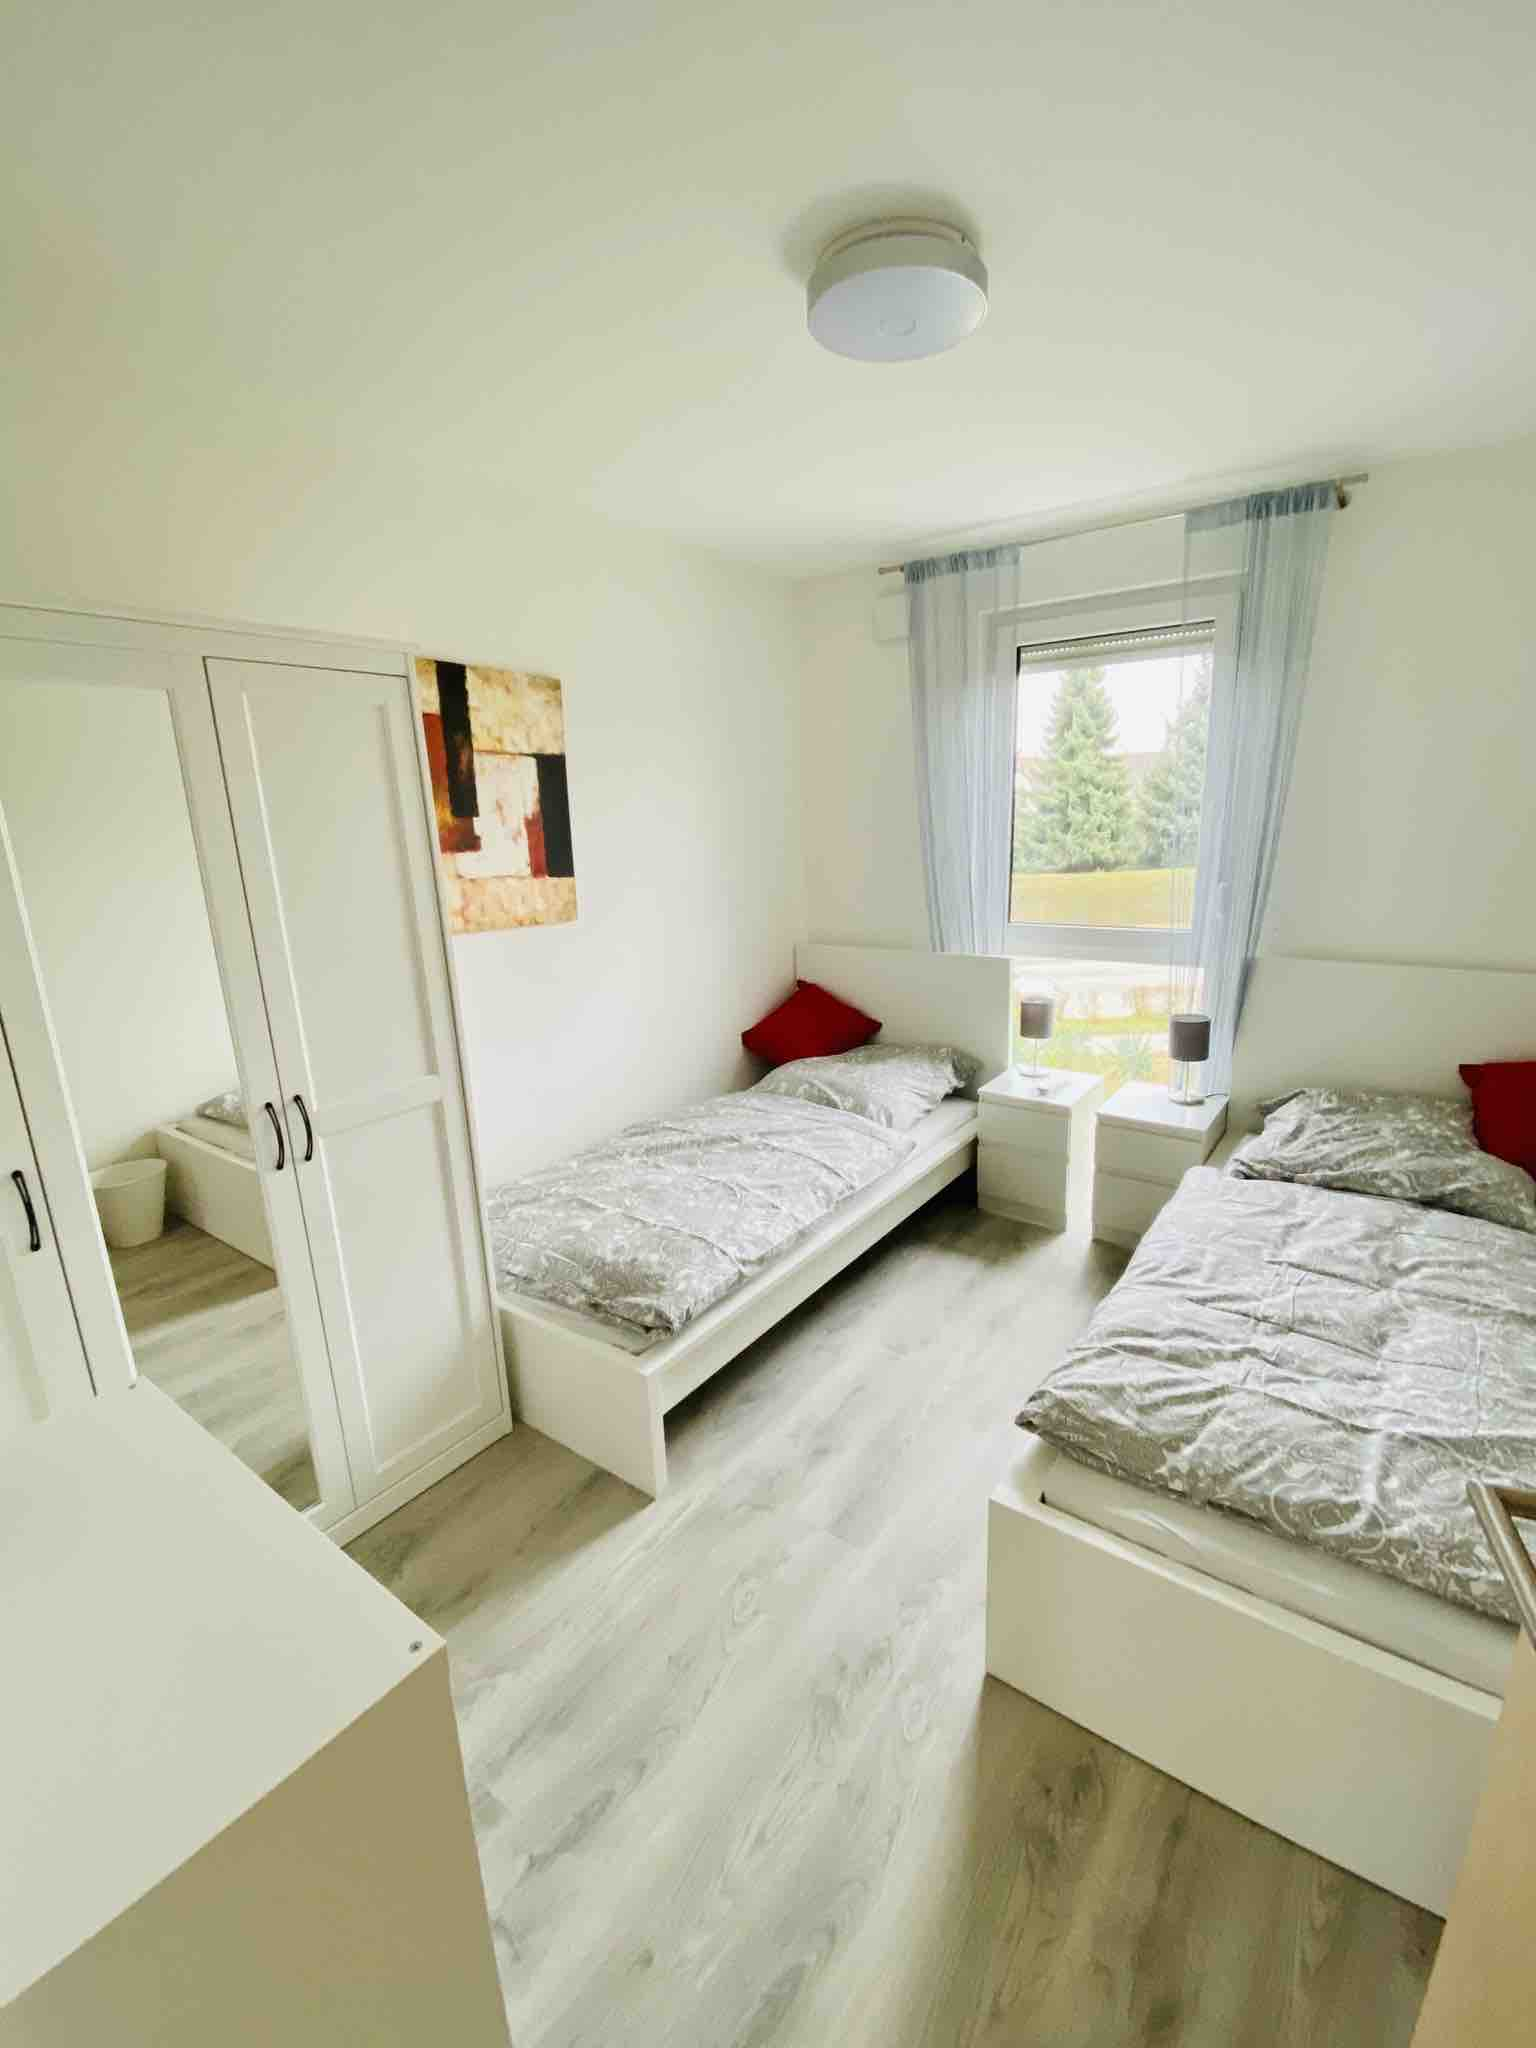 Gemutliche Doppelzimmer Im 5 Seen Land Gilching Townhouses For Rent In Gilching By Germany